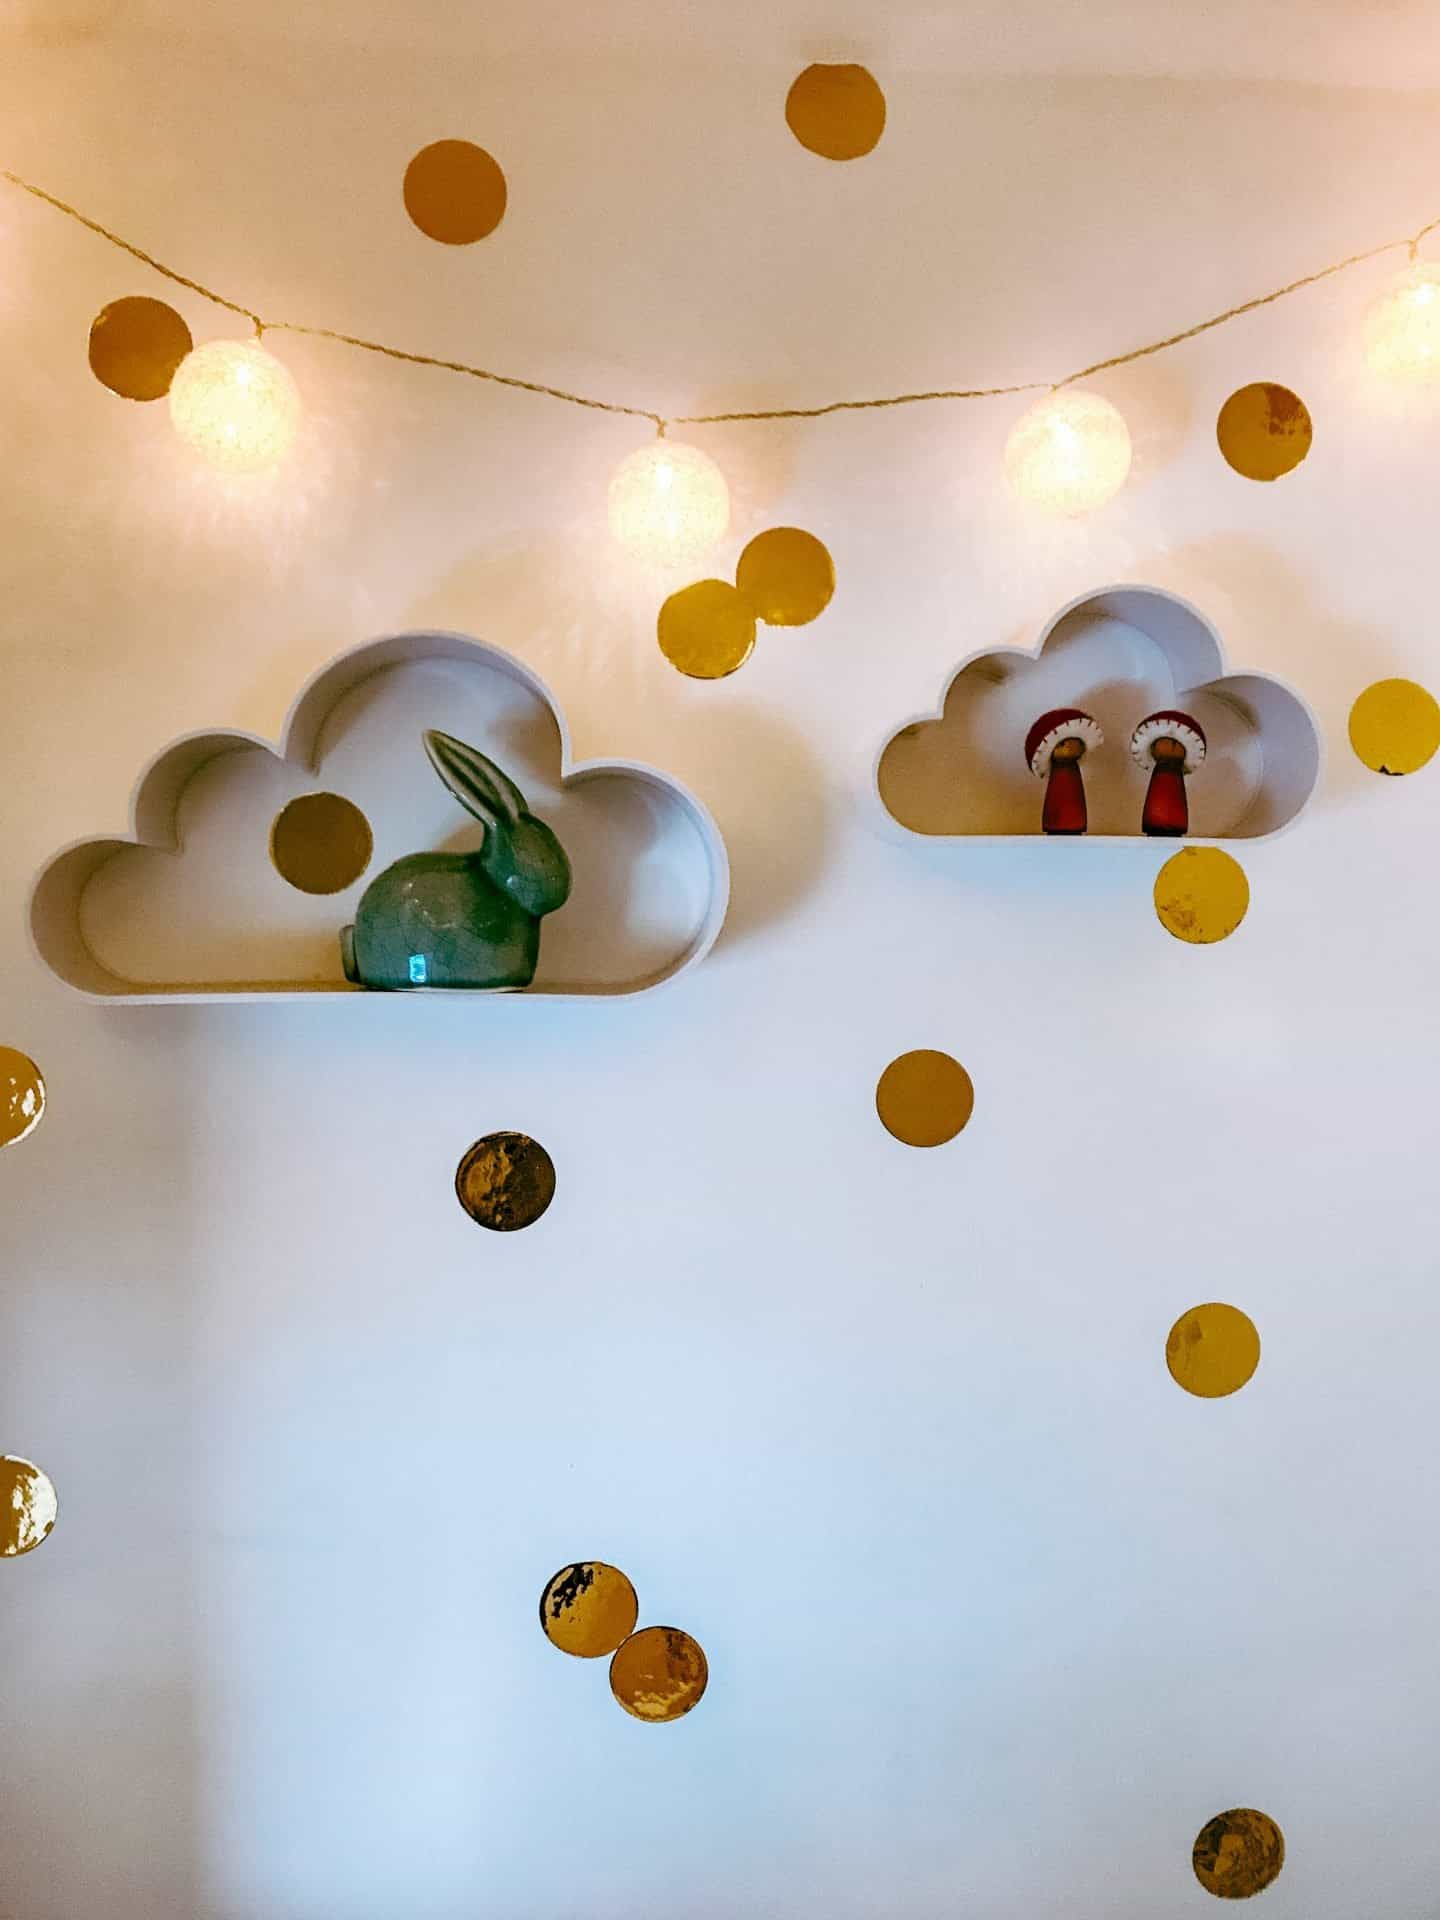 Cloud shelves, gold confetti wall stickers and fairy lights